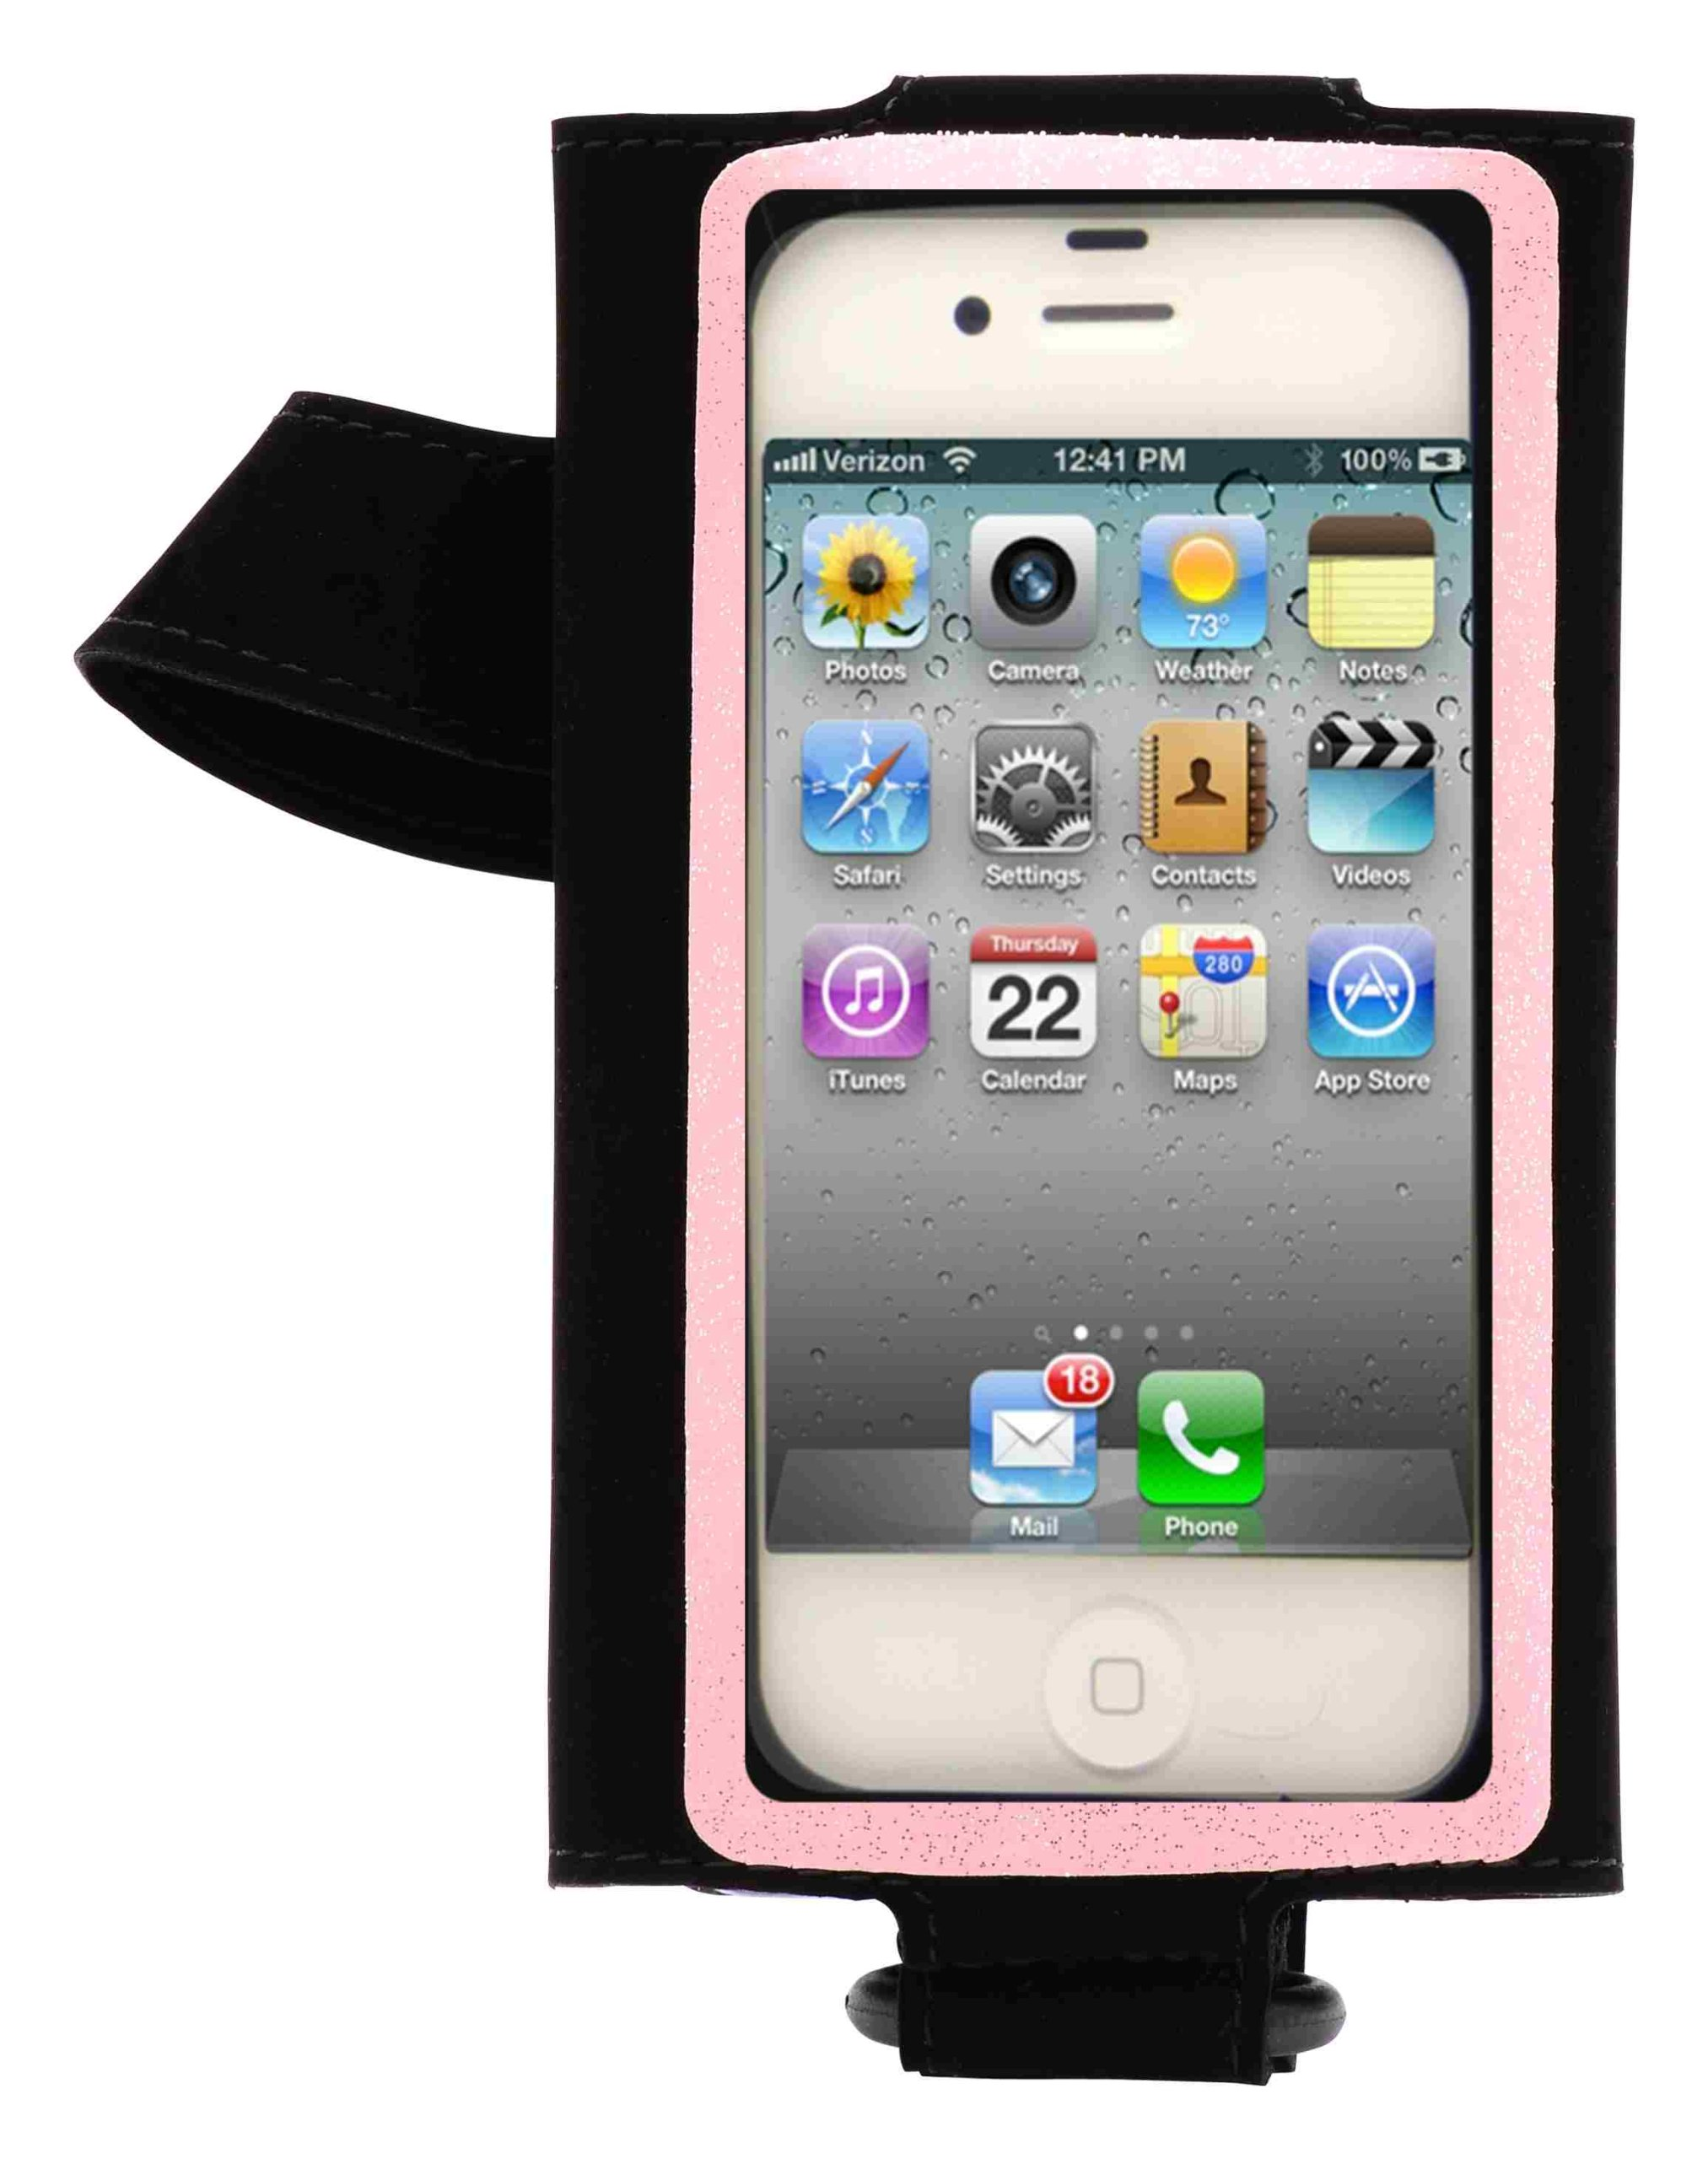 HB Tune hand/arm band for Iphone and Ipod Touch (Left (intended for right handed users) with black background and pink stripe)